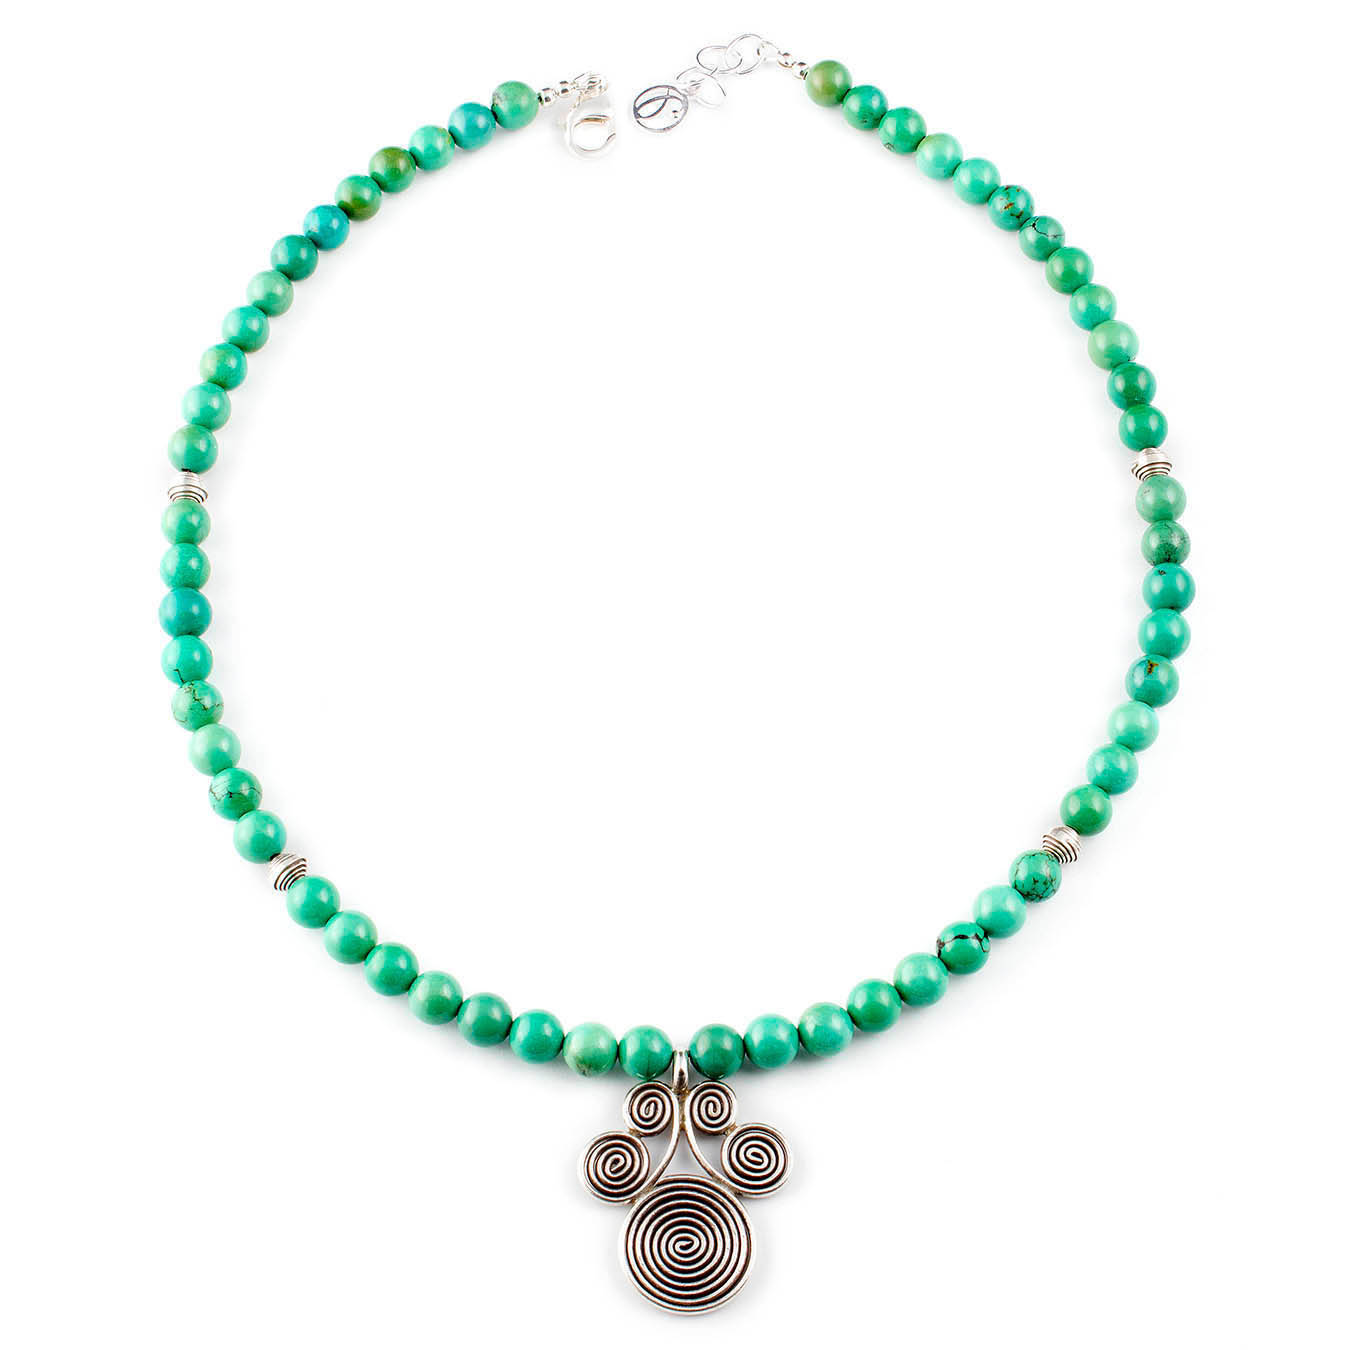 Birthstone necklace beaded with turquoise and thai silver pendant